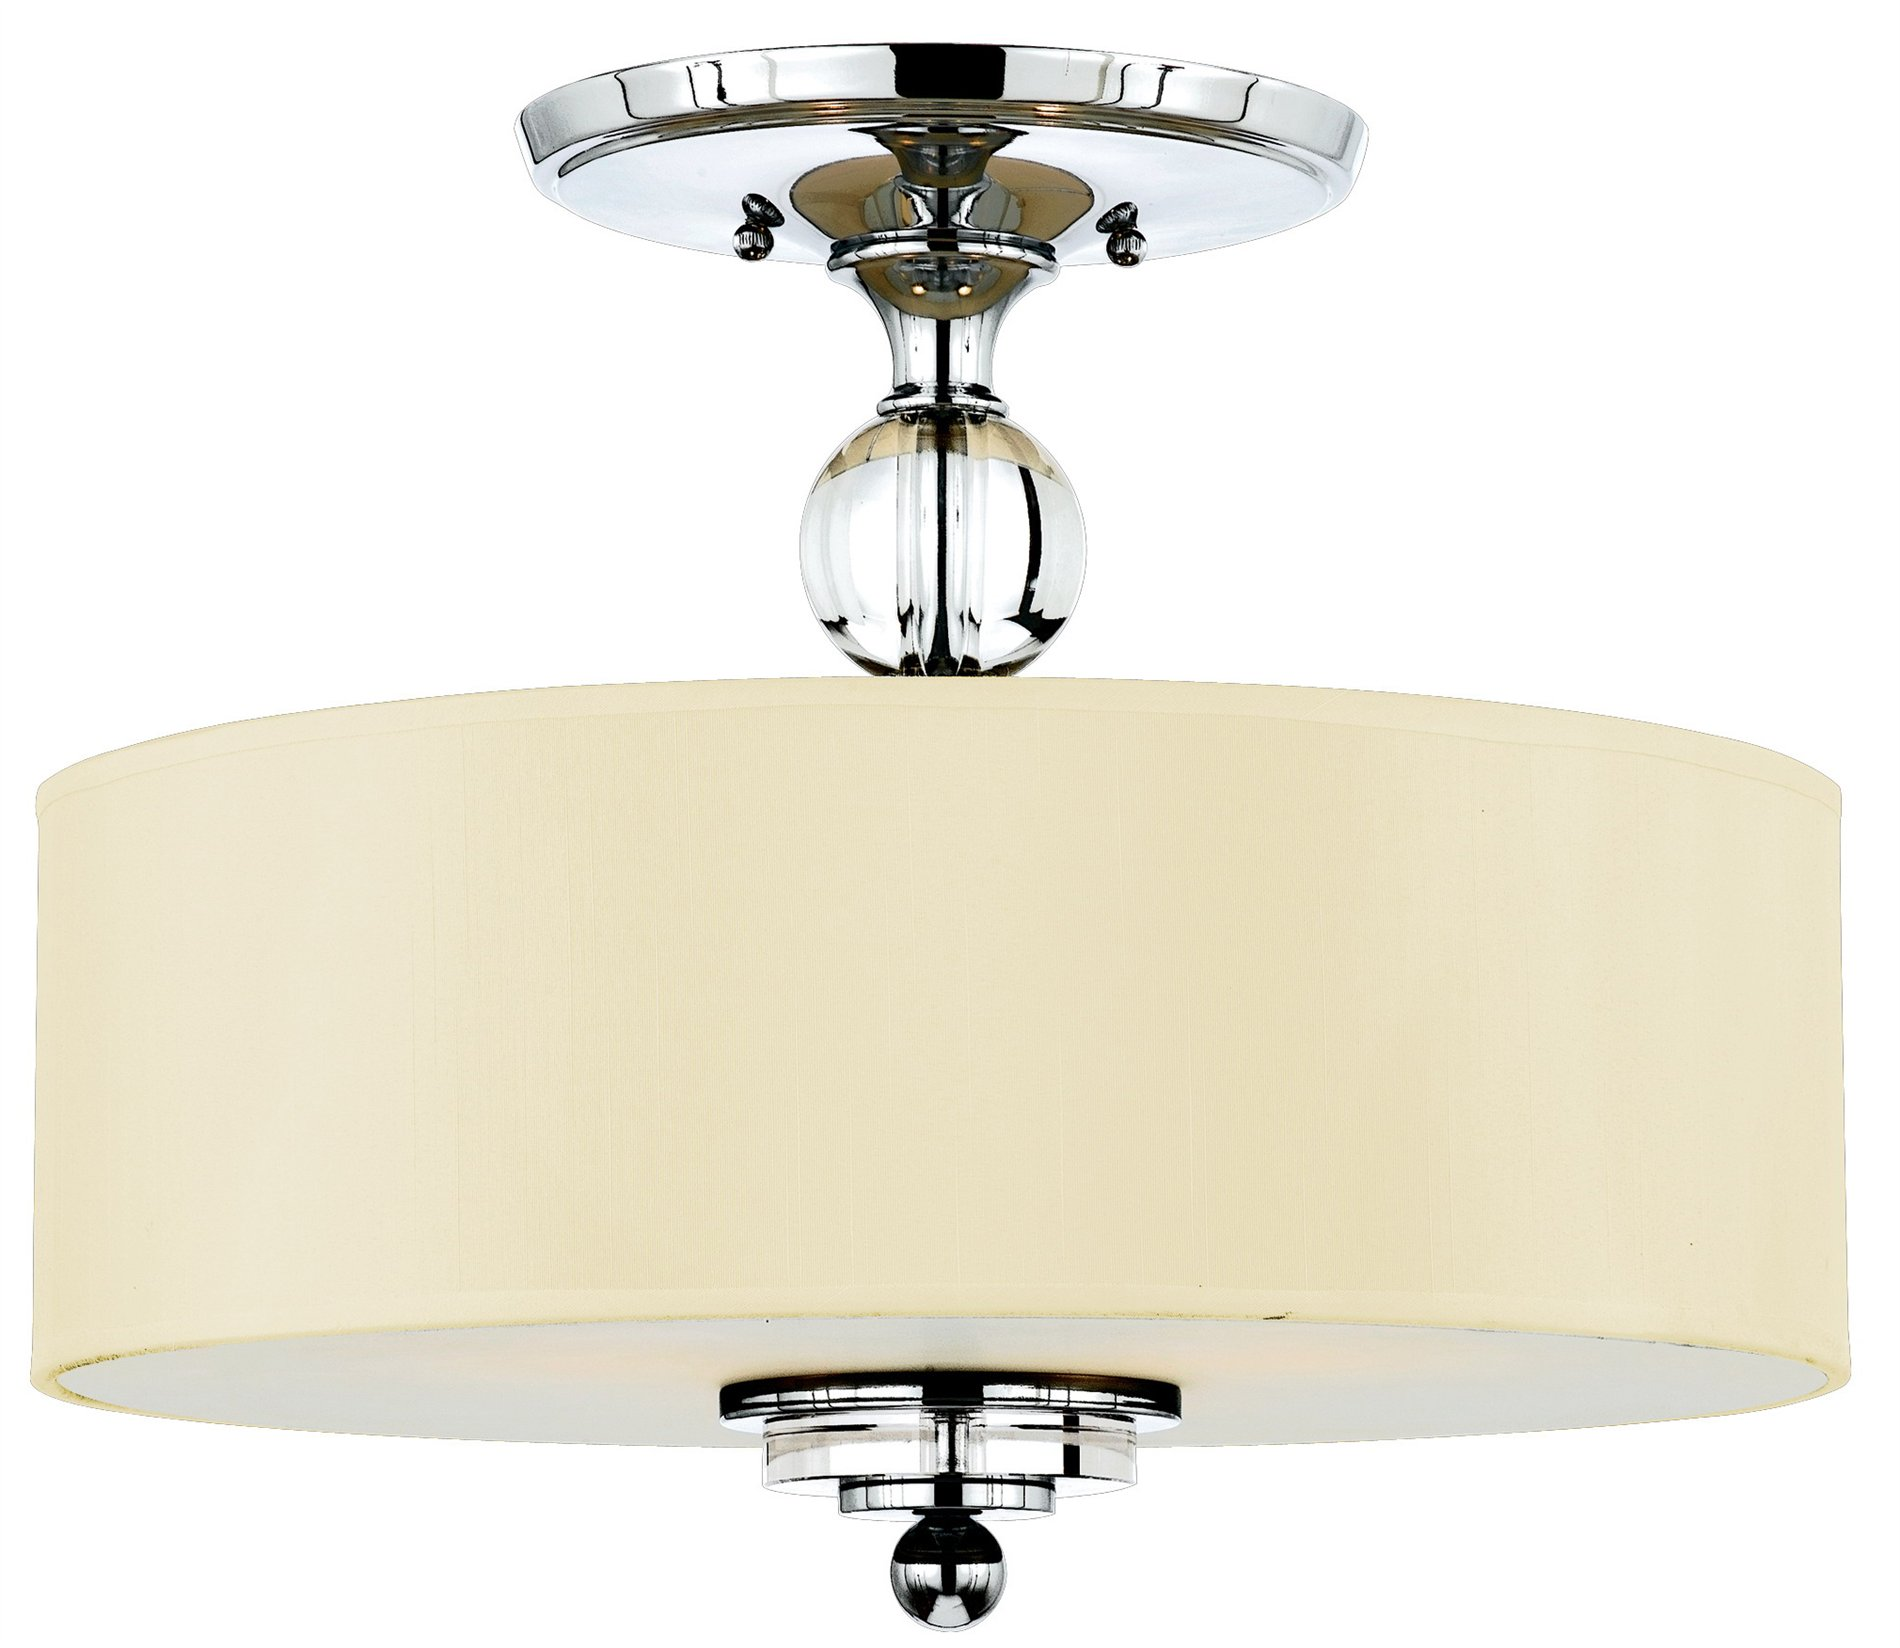 Quoizel Dw1717c Downtown Modern Contemporary Semi Flush Mount Ceiling Light Qz Dw1717c